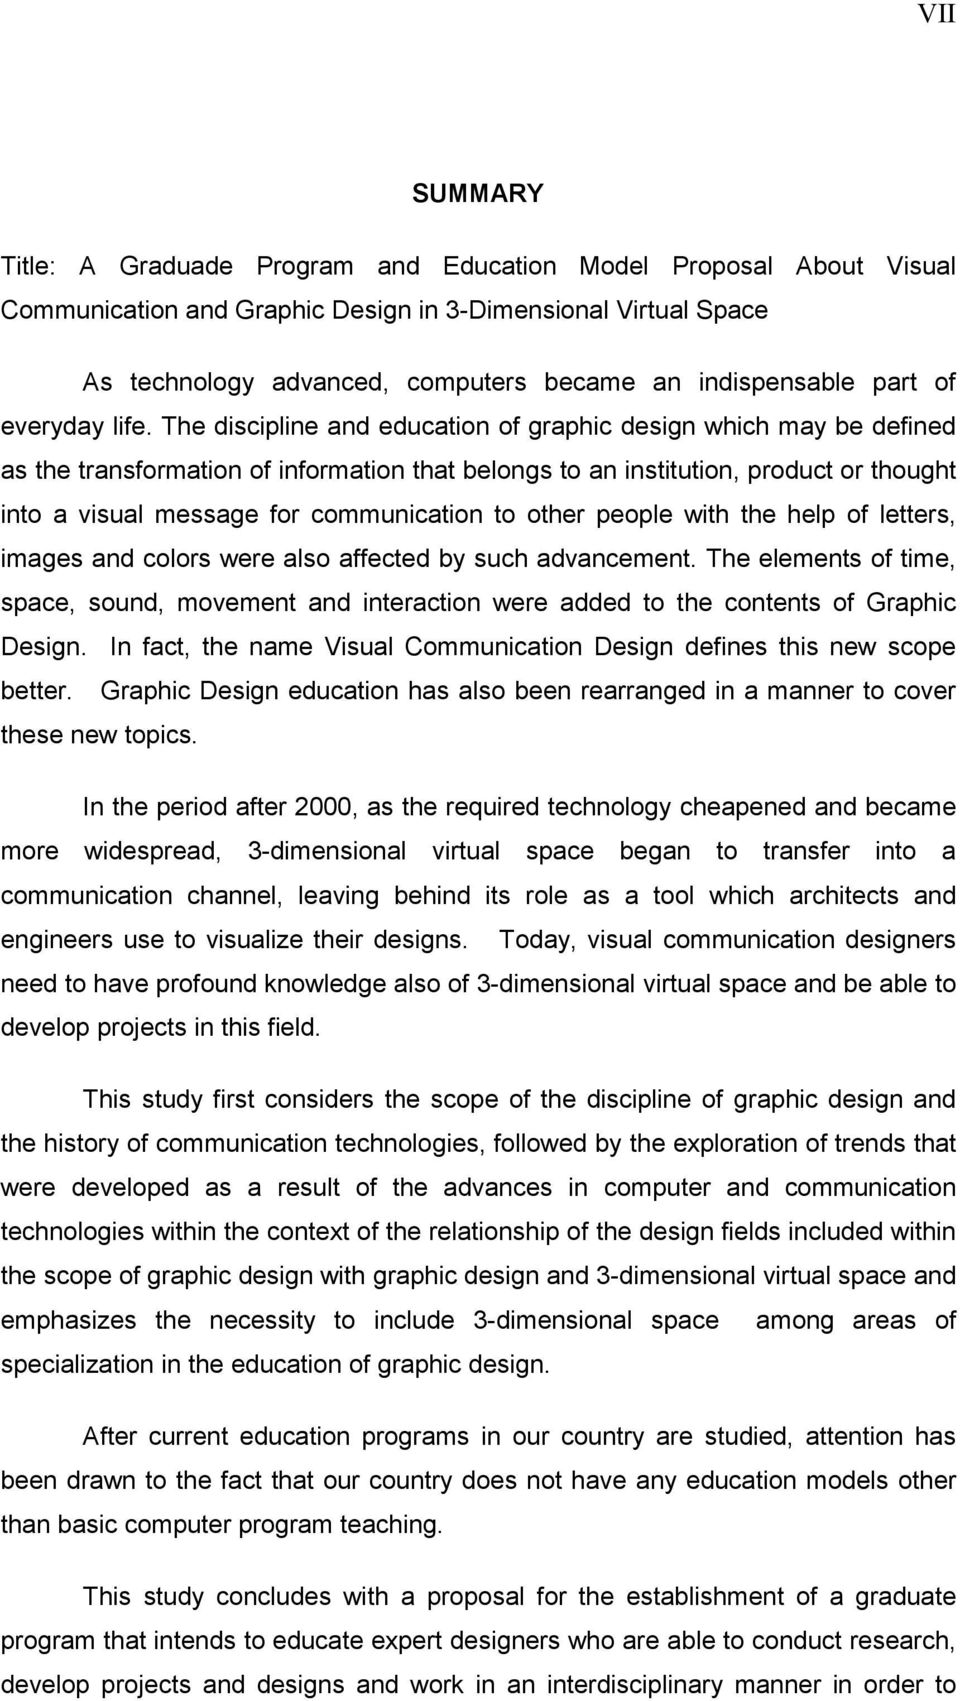 The discipline and education of graphic design which may be defined as the transformation of information that belongs to an institution, product or thought into a visual message for communication to